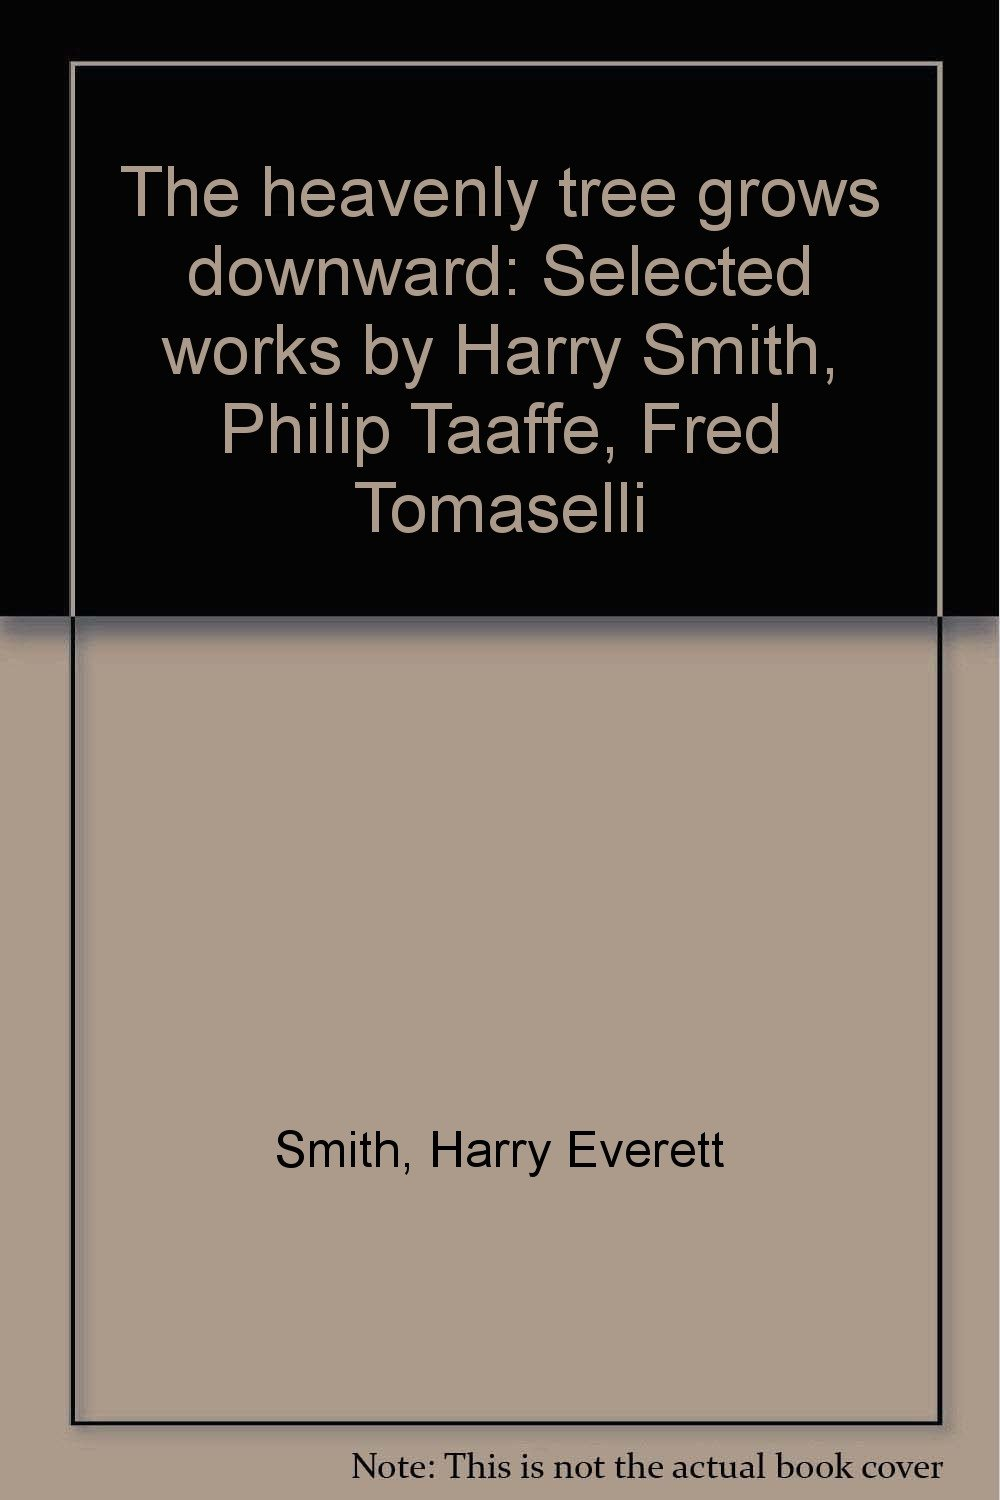 The heavenly tree grows downward: Selected works by Harry Smith, Philip Taaffe, Fred Tomaselli pdf epub